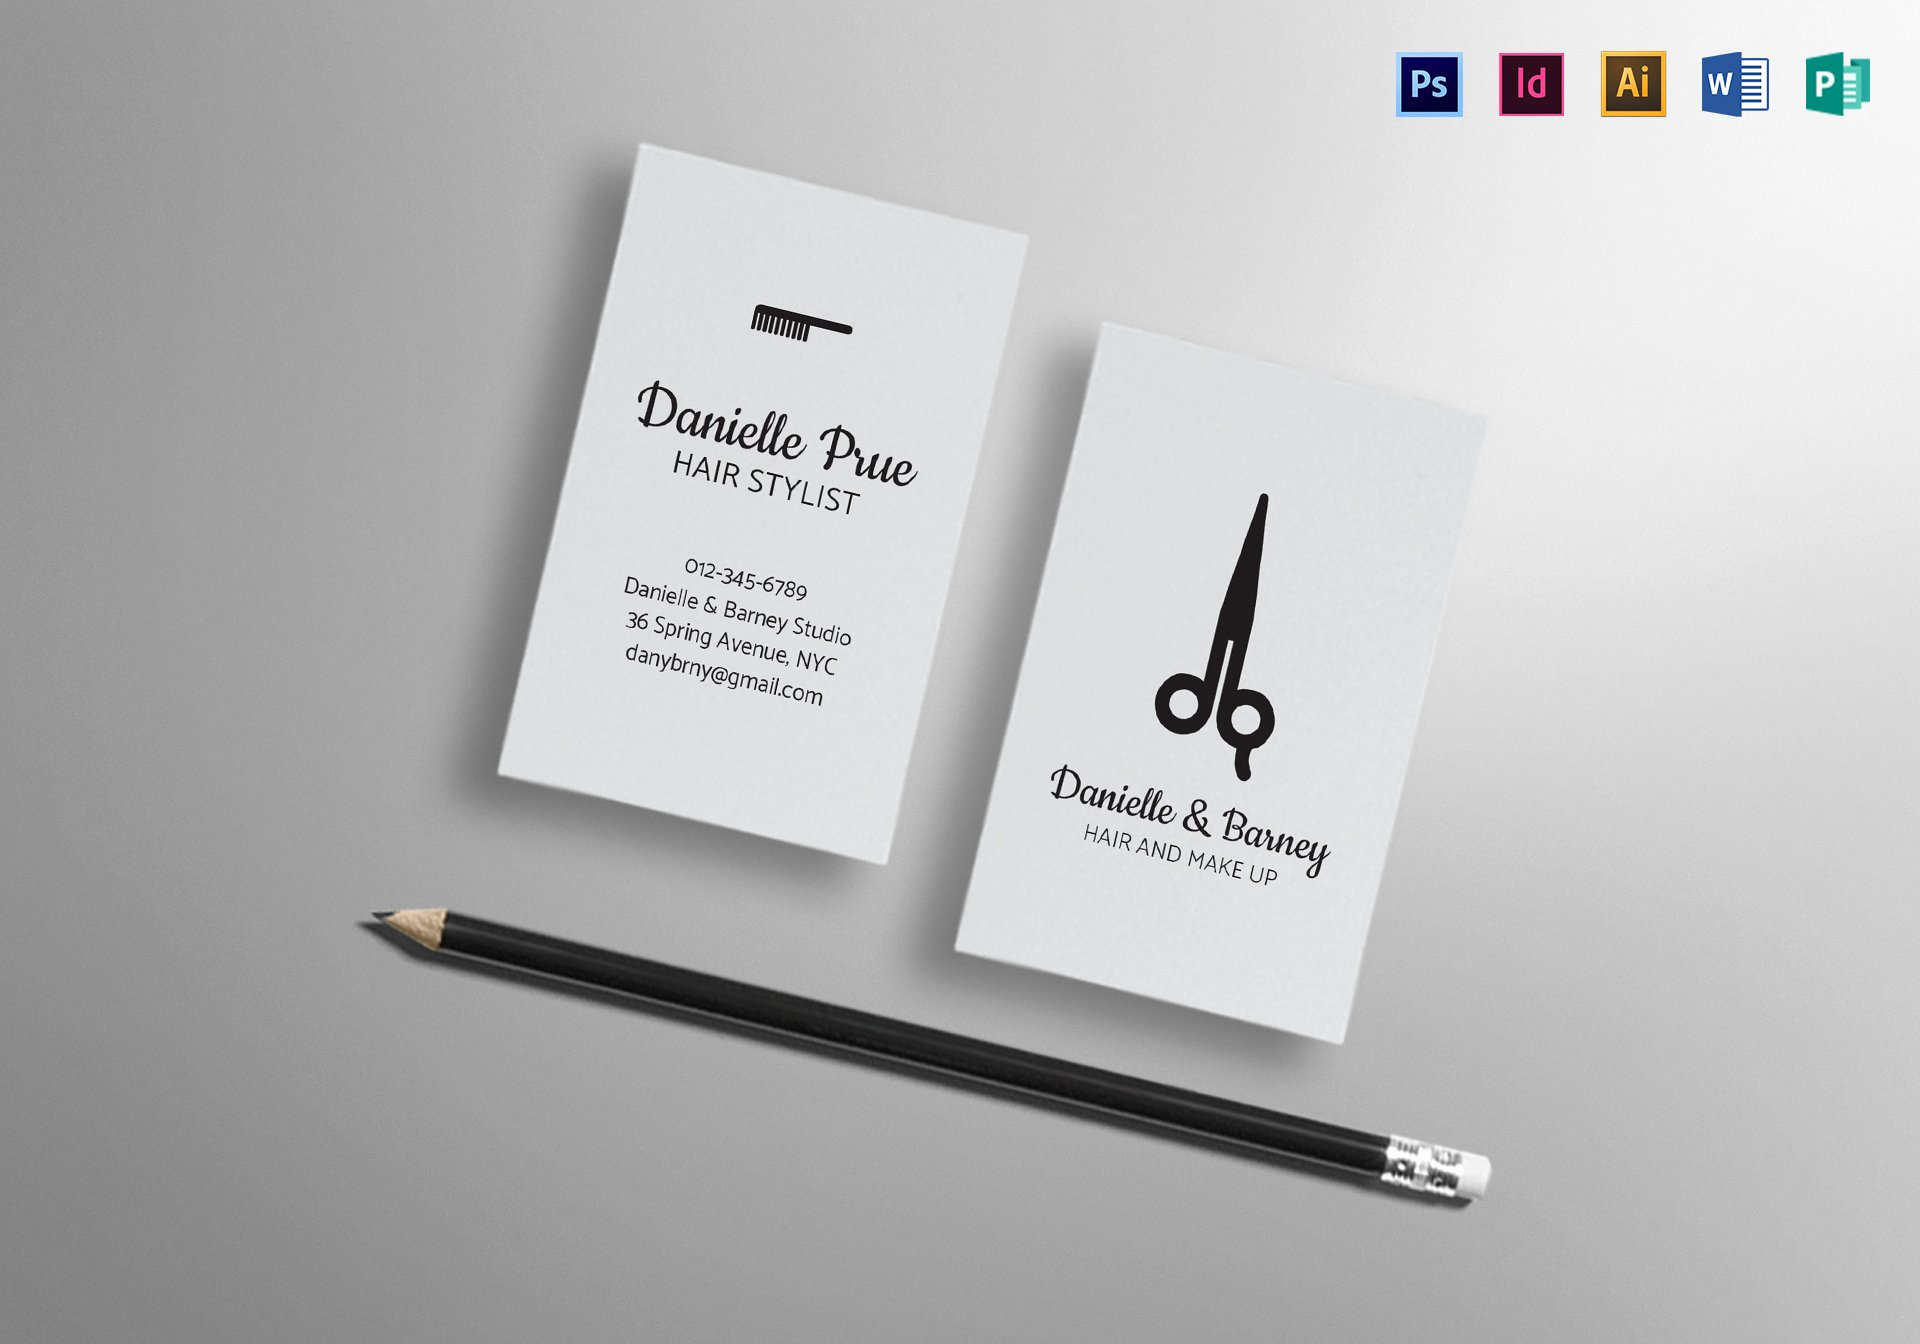 Hair Stylist Business Card Awesome Hair Stylist Business Card Design Template In Psd Word Publisher Illustrator Indesign